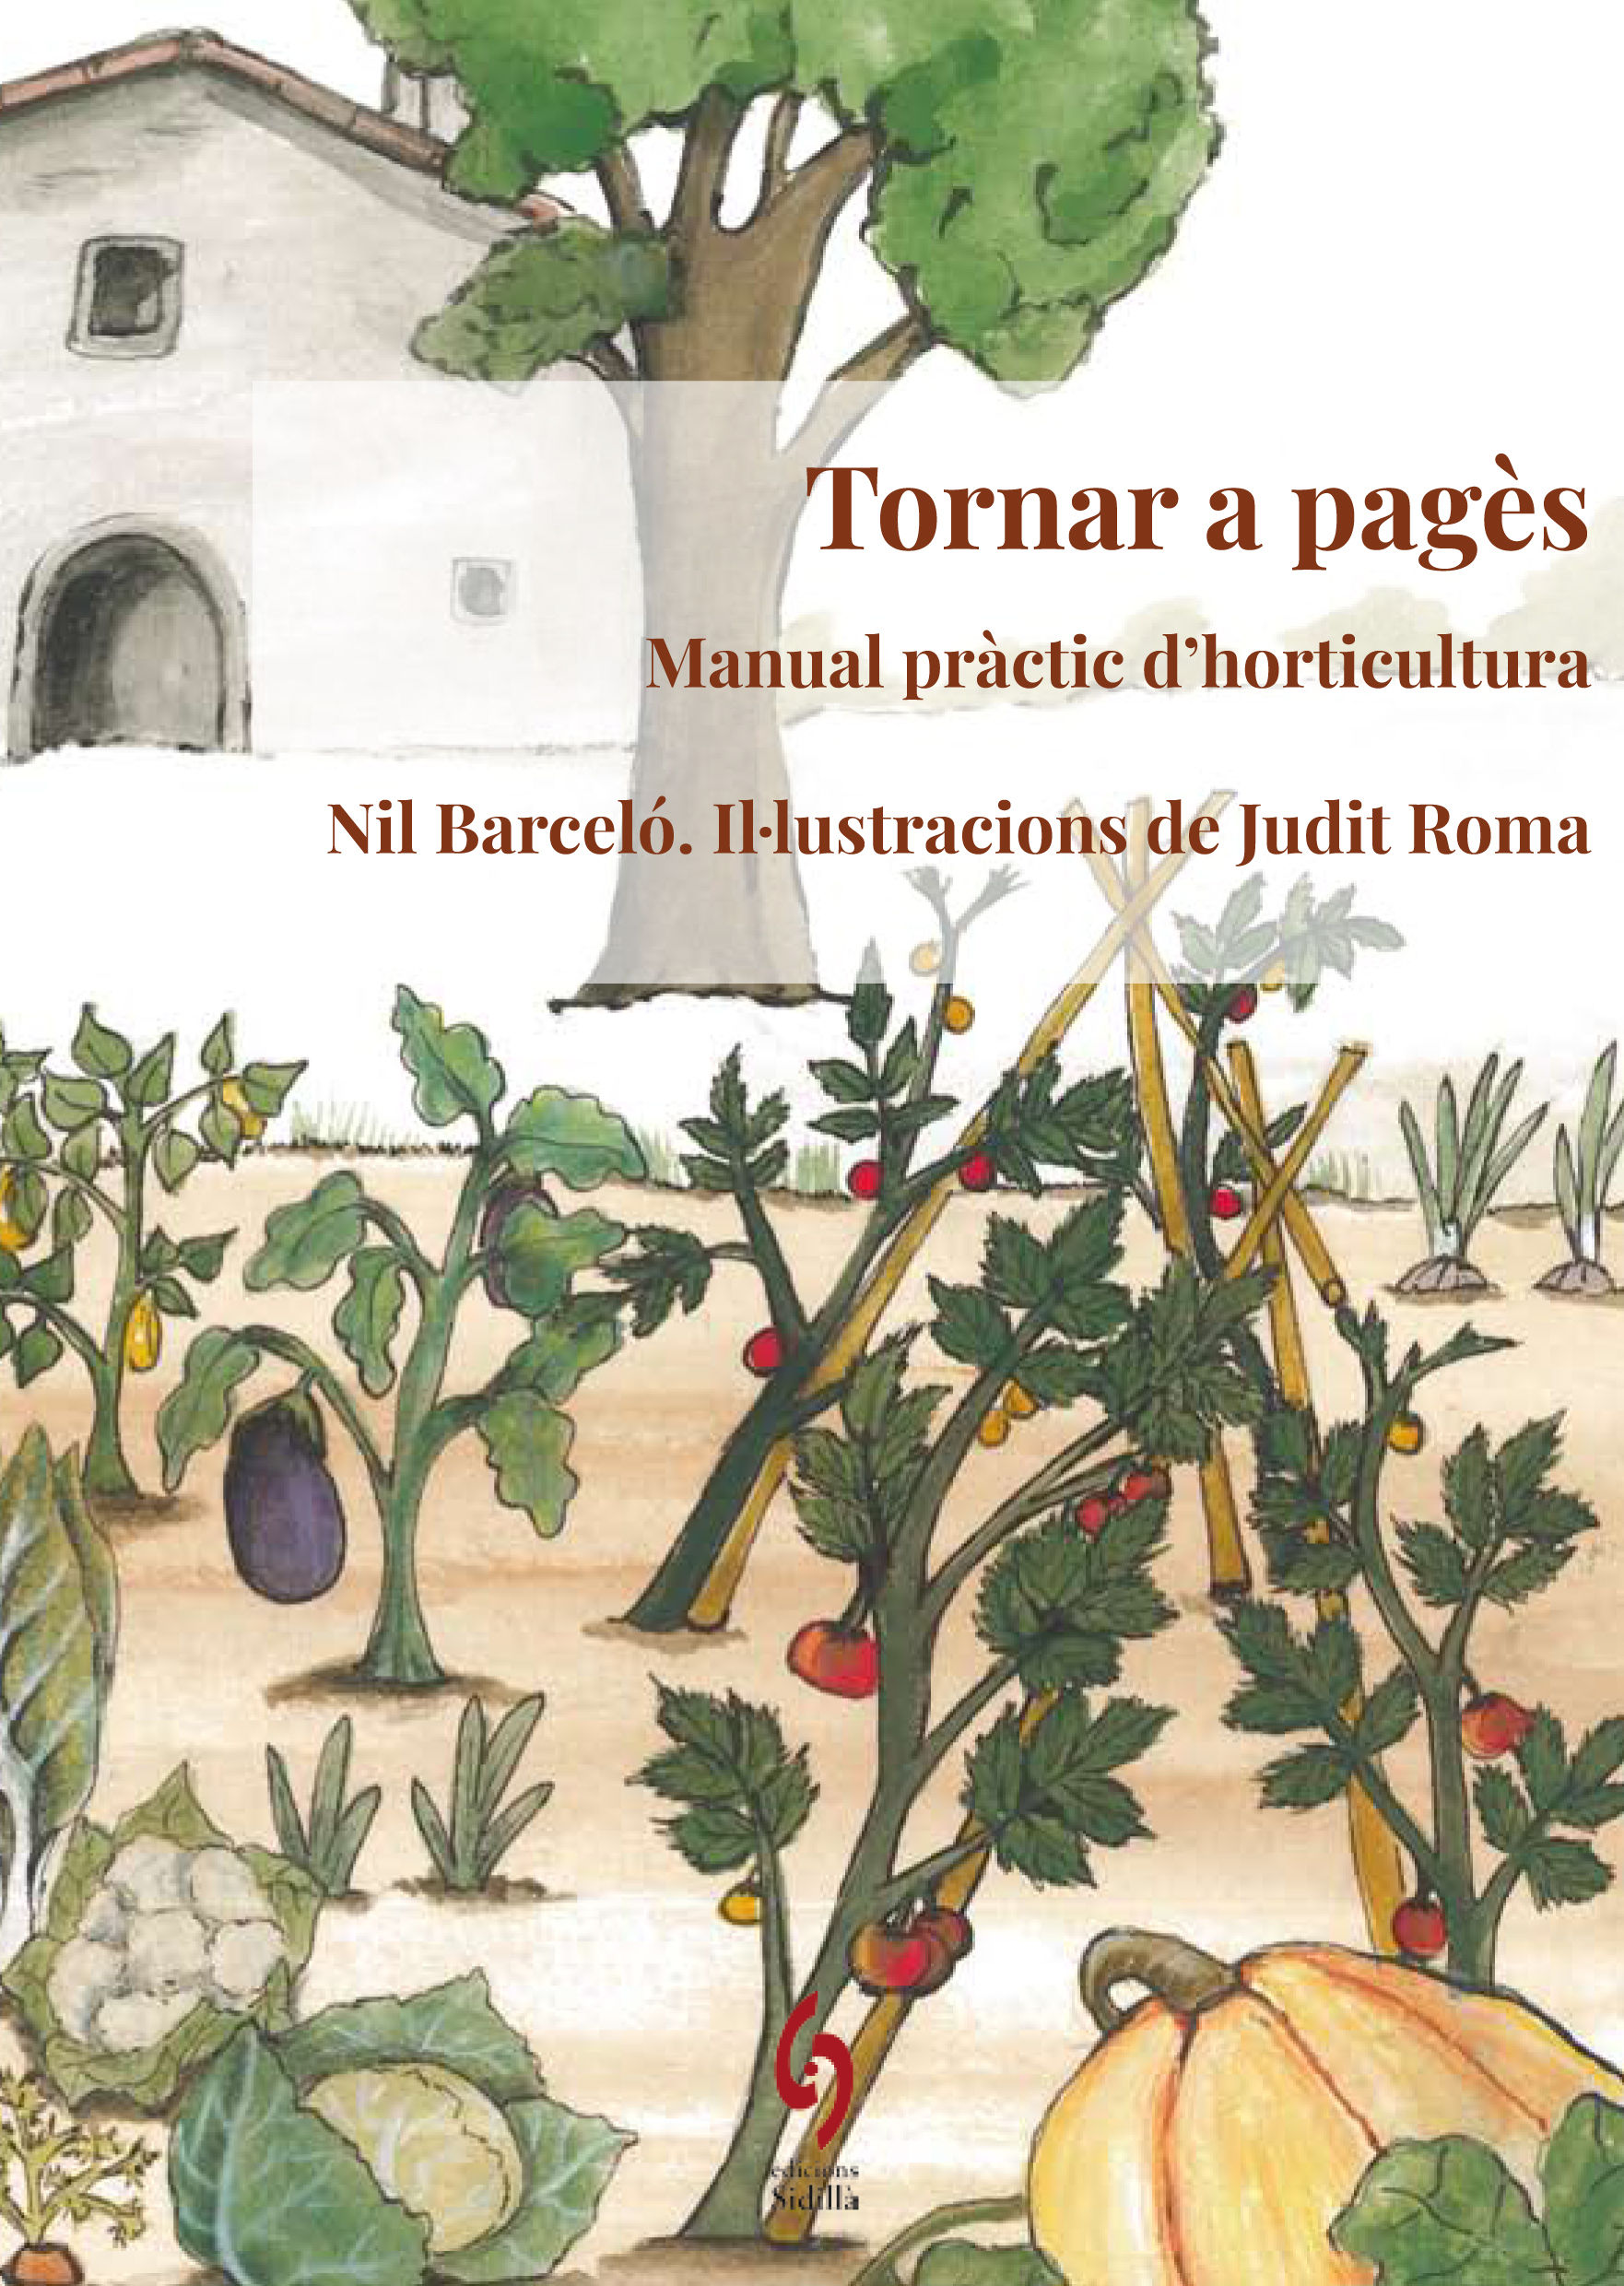 TORNAR A PAGES